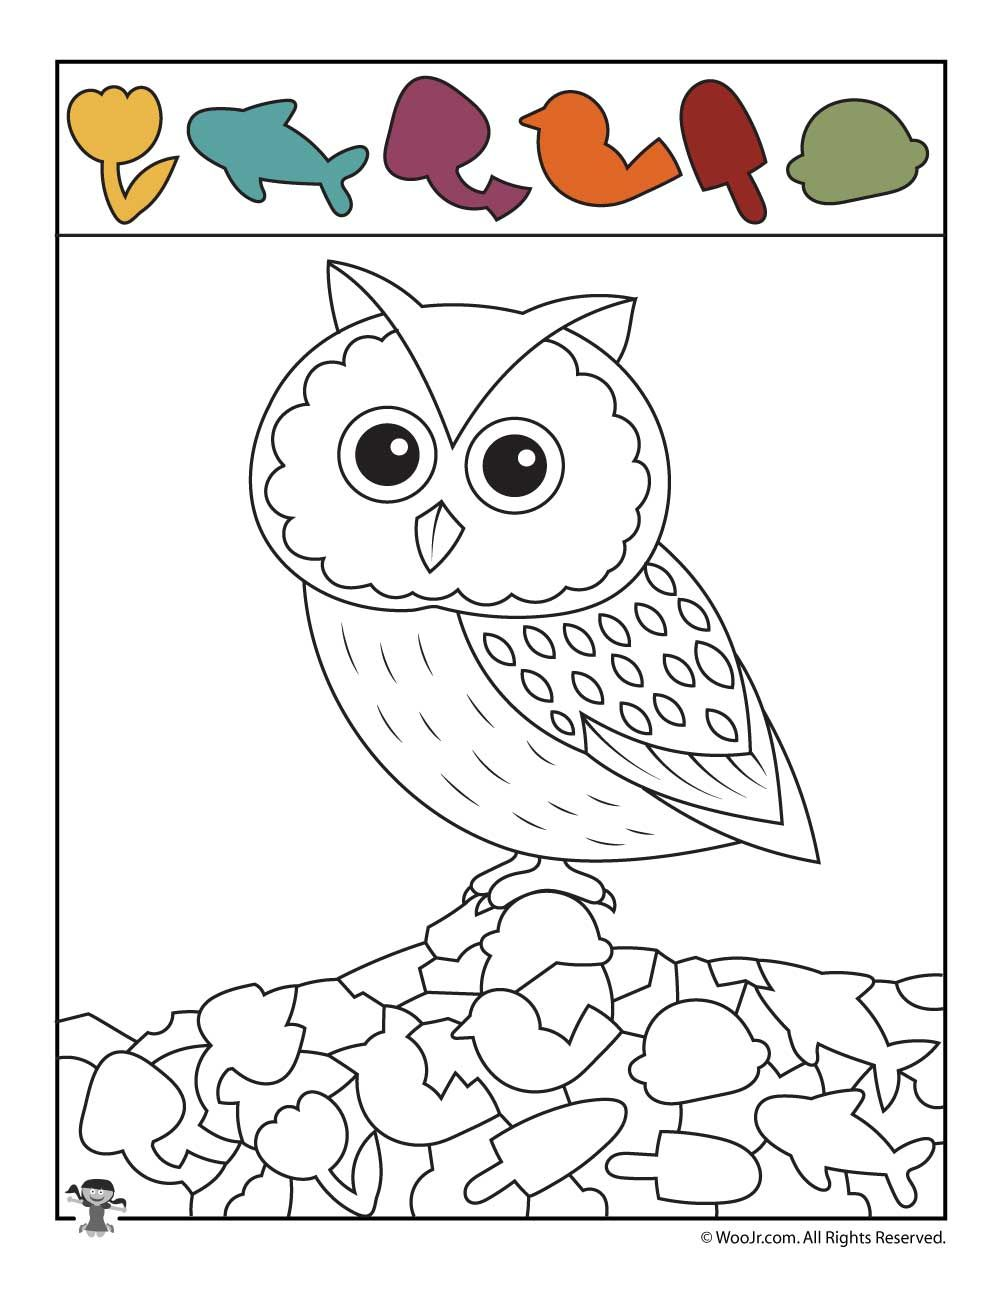 Printable Thanksgiving Activity Pages And Coloring Pages Woo Jr Kids Activities Hidden Pictures Thanksgiving Activities For Kids Thanksgiving Activities [ 1294 x 1000 Pixel ]